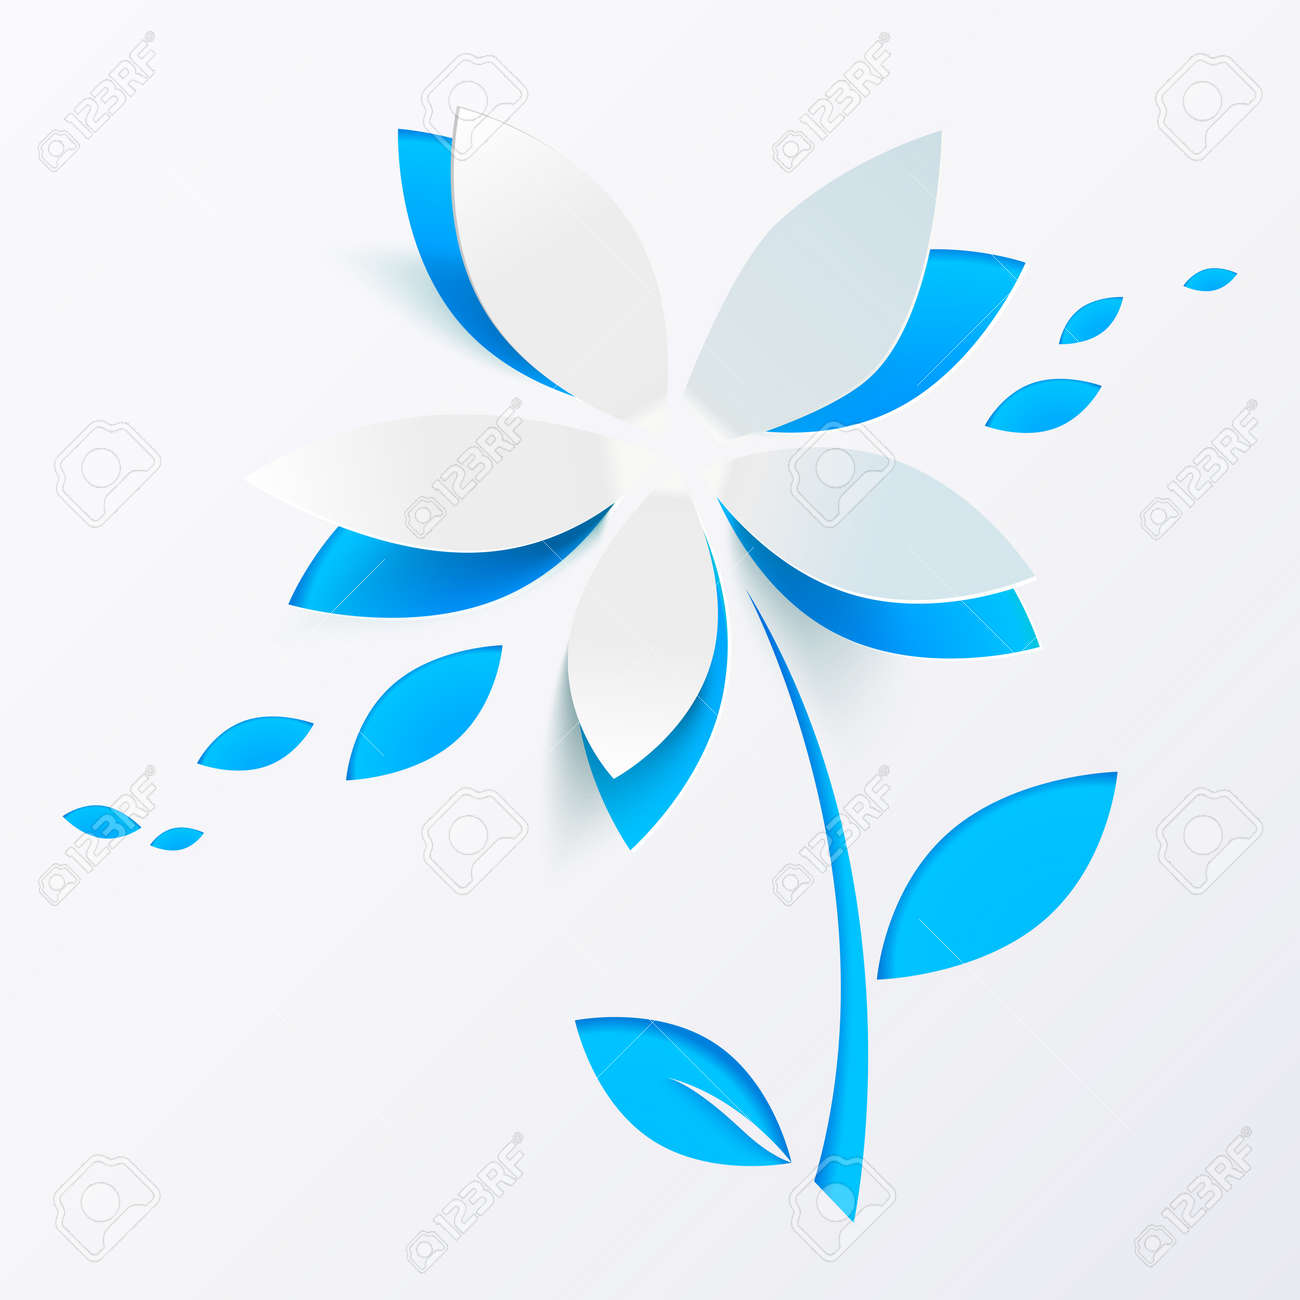 Blue paper flower vector greeting card template Stock Photo - 18776323